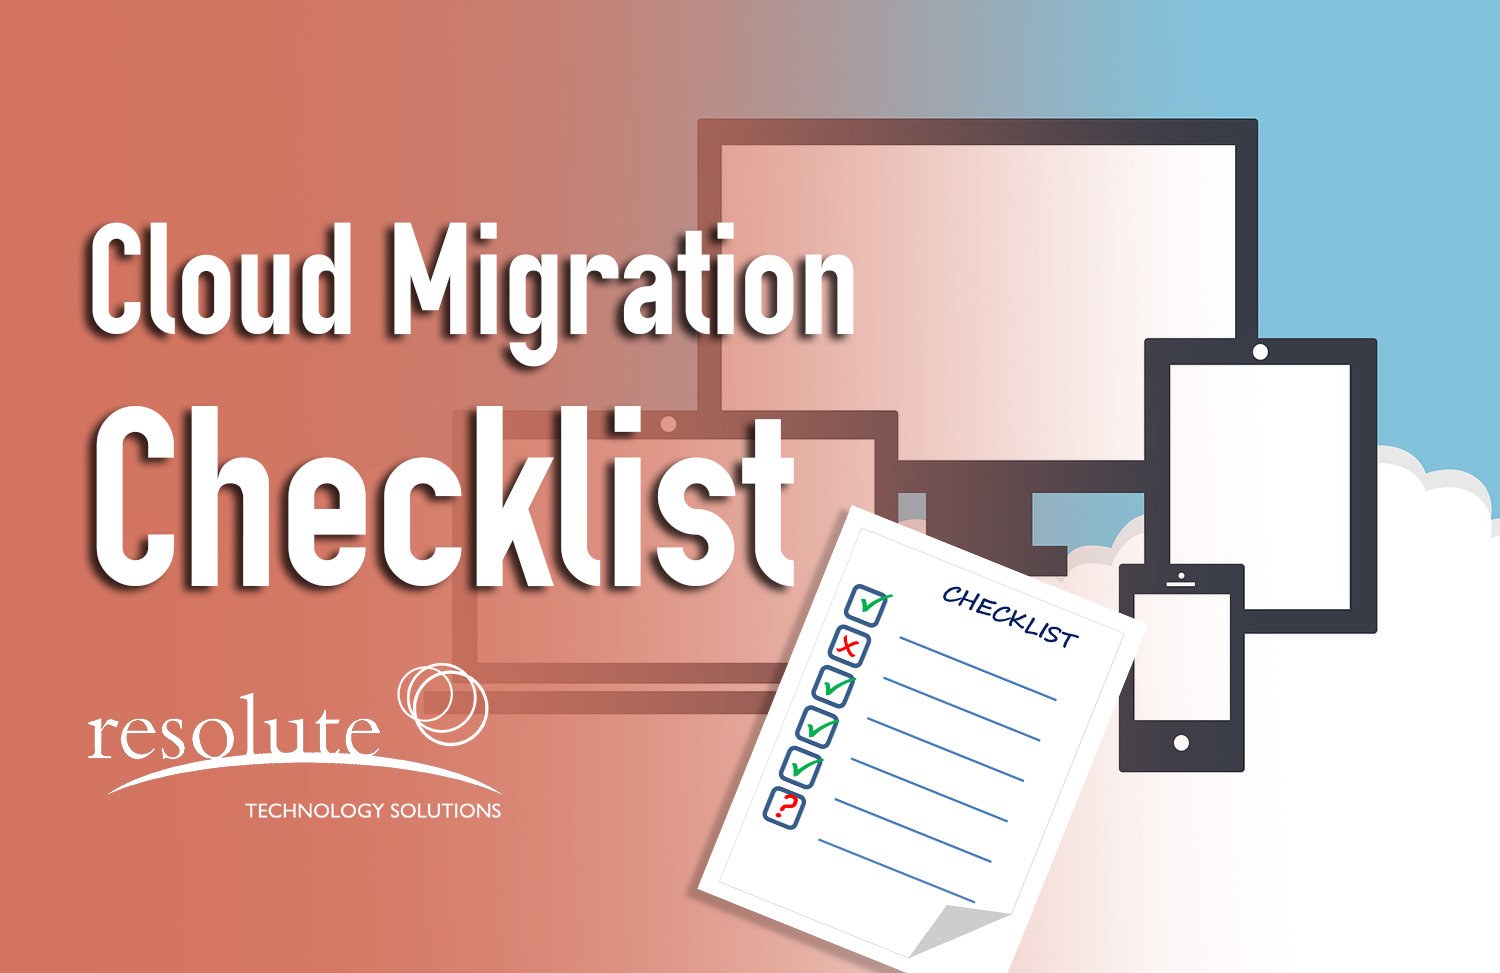 A Full Cloud Migration Checklist